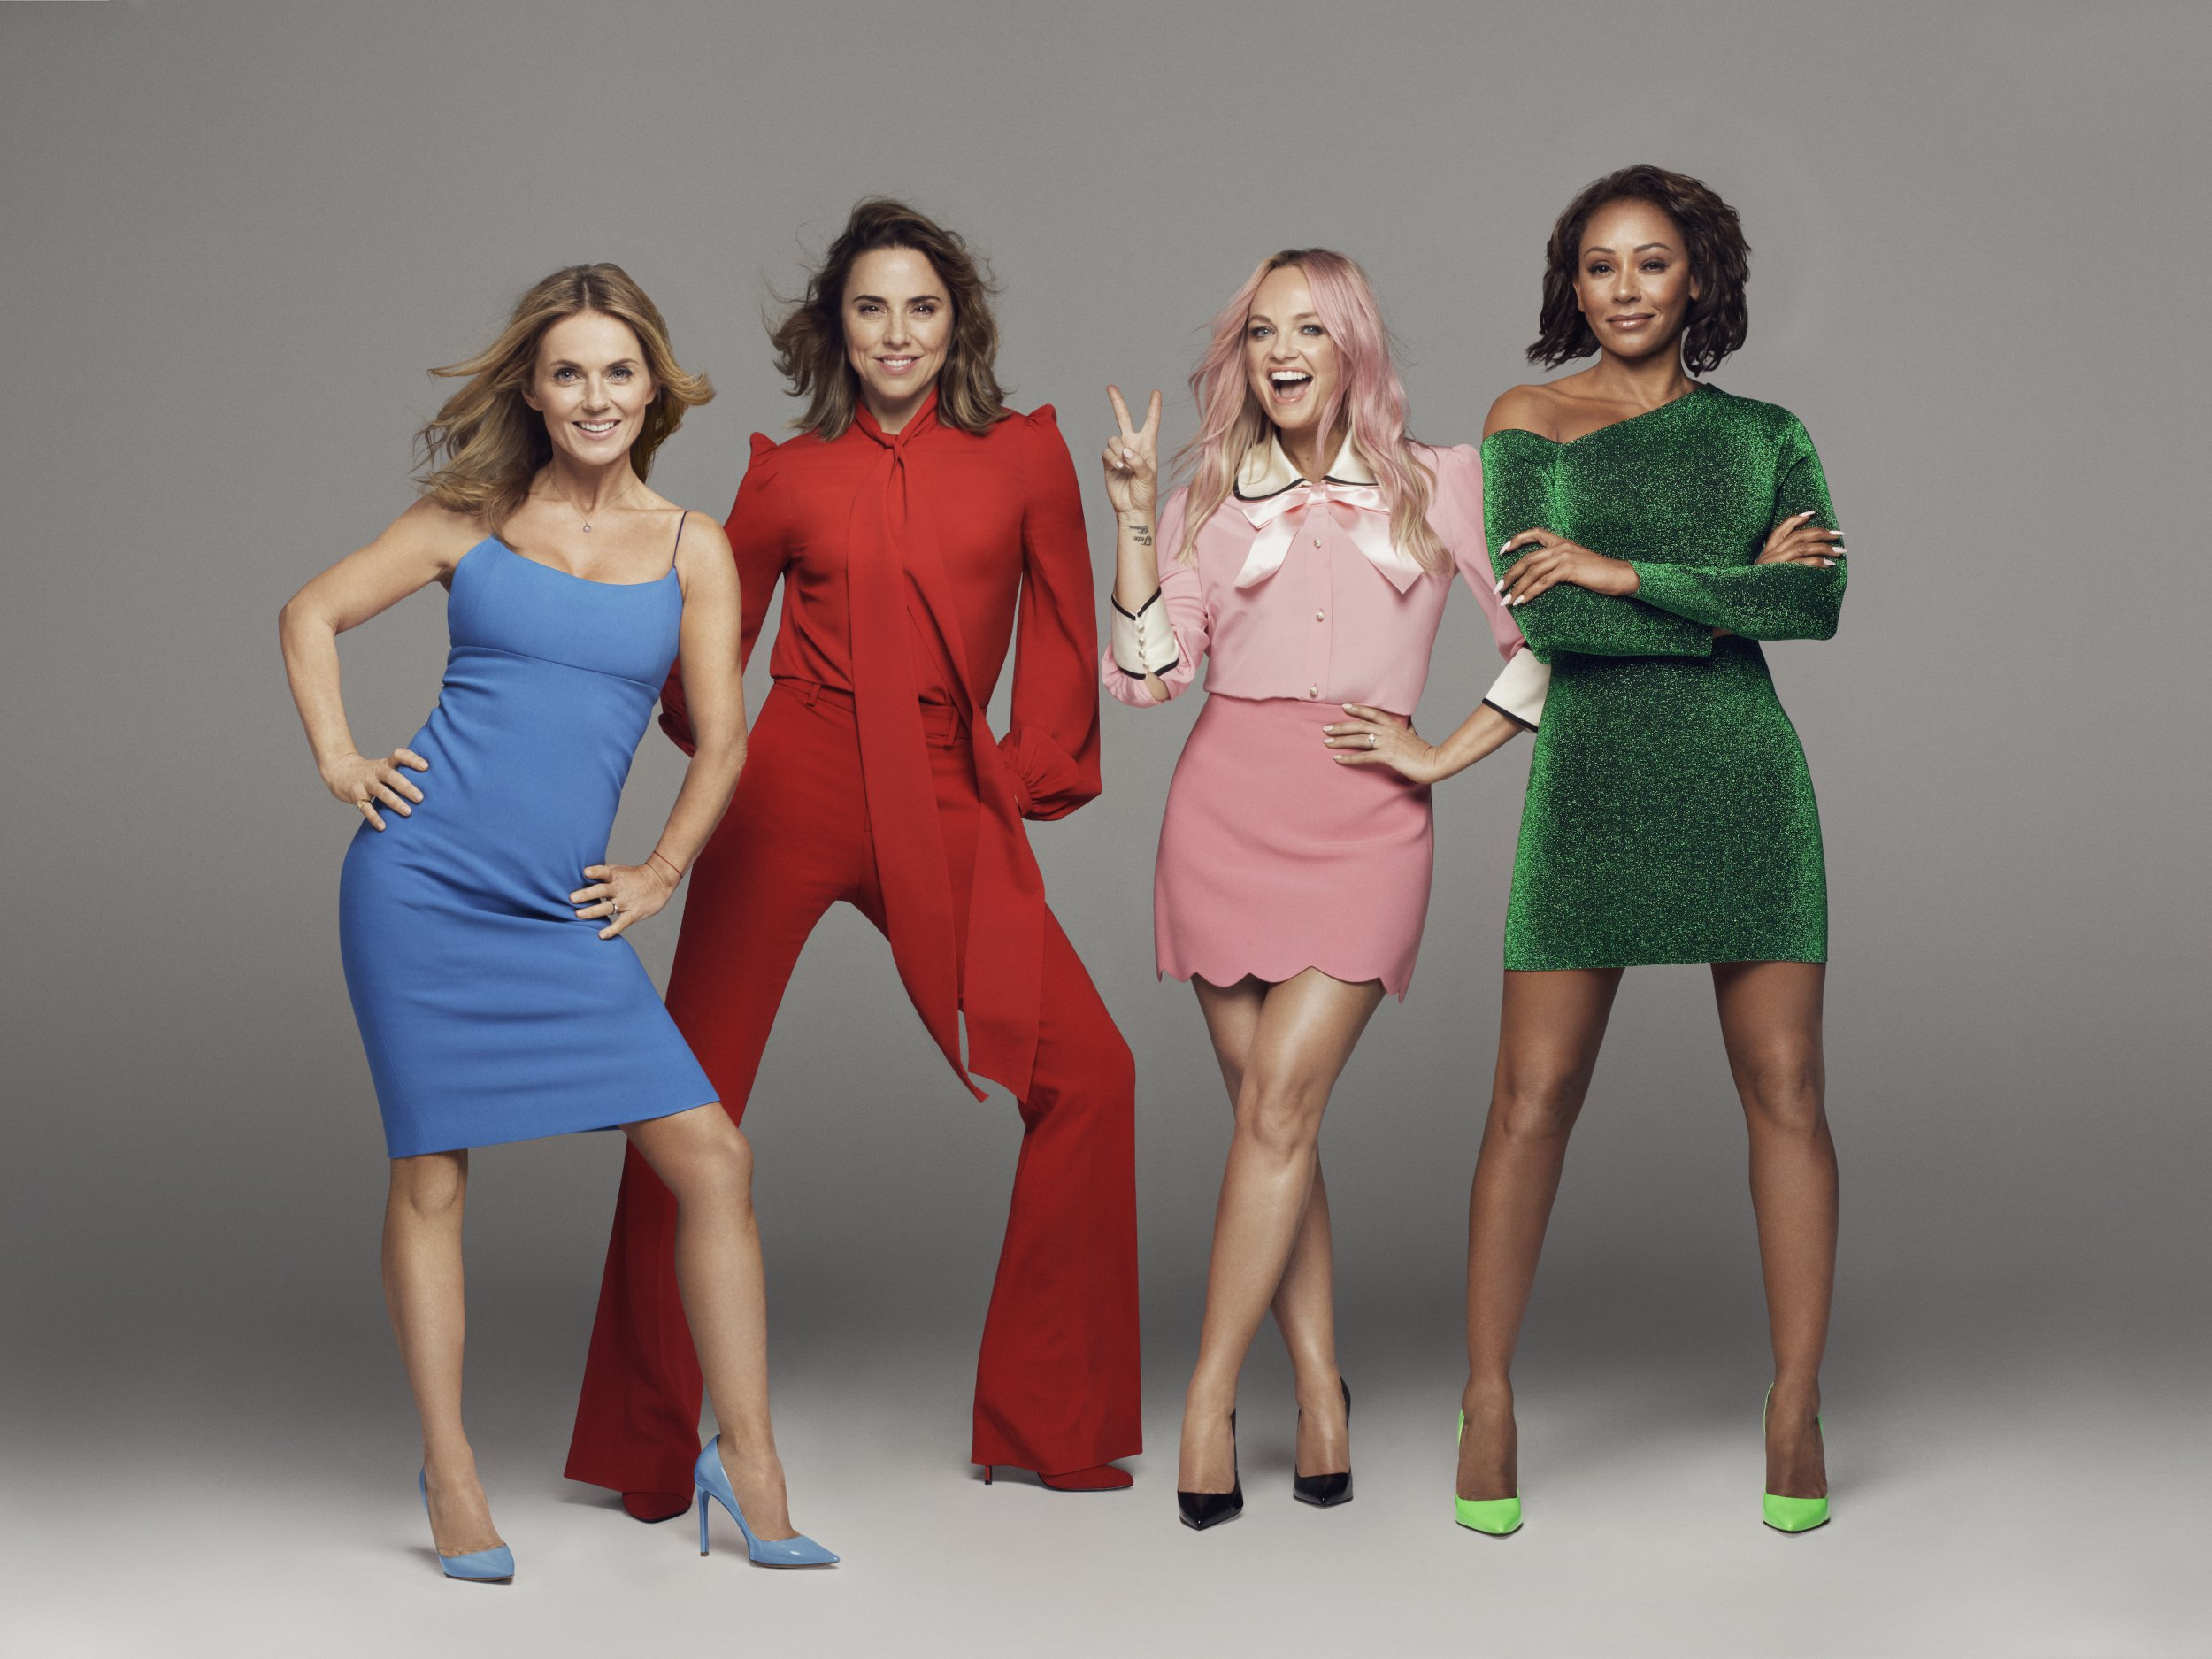 Punters are peeved Westlife gigs clash with recently revealed Spice Girls reunion